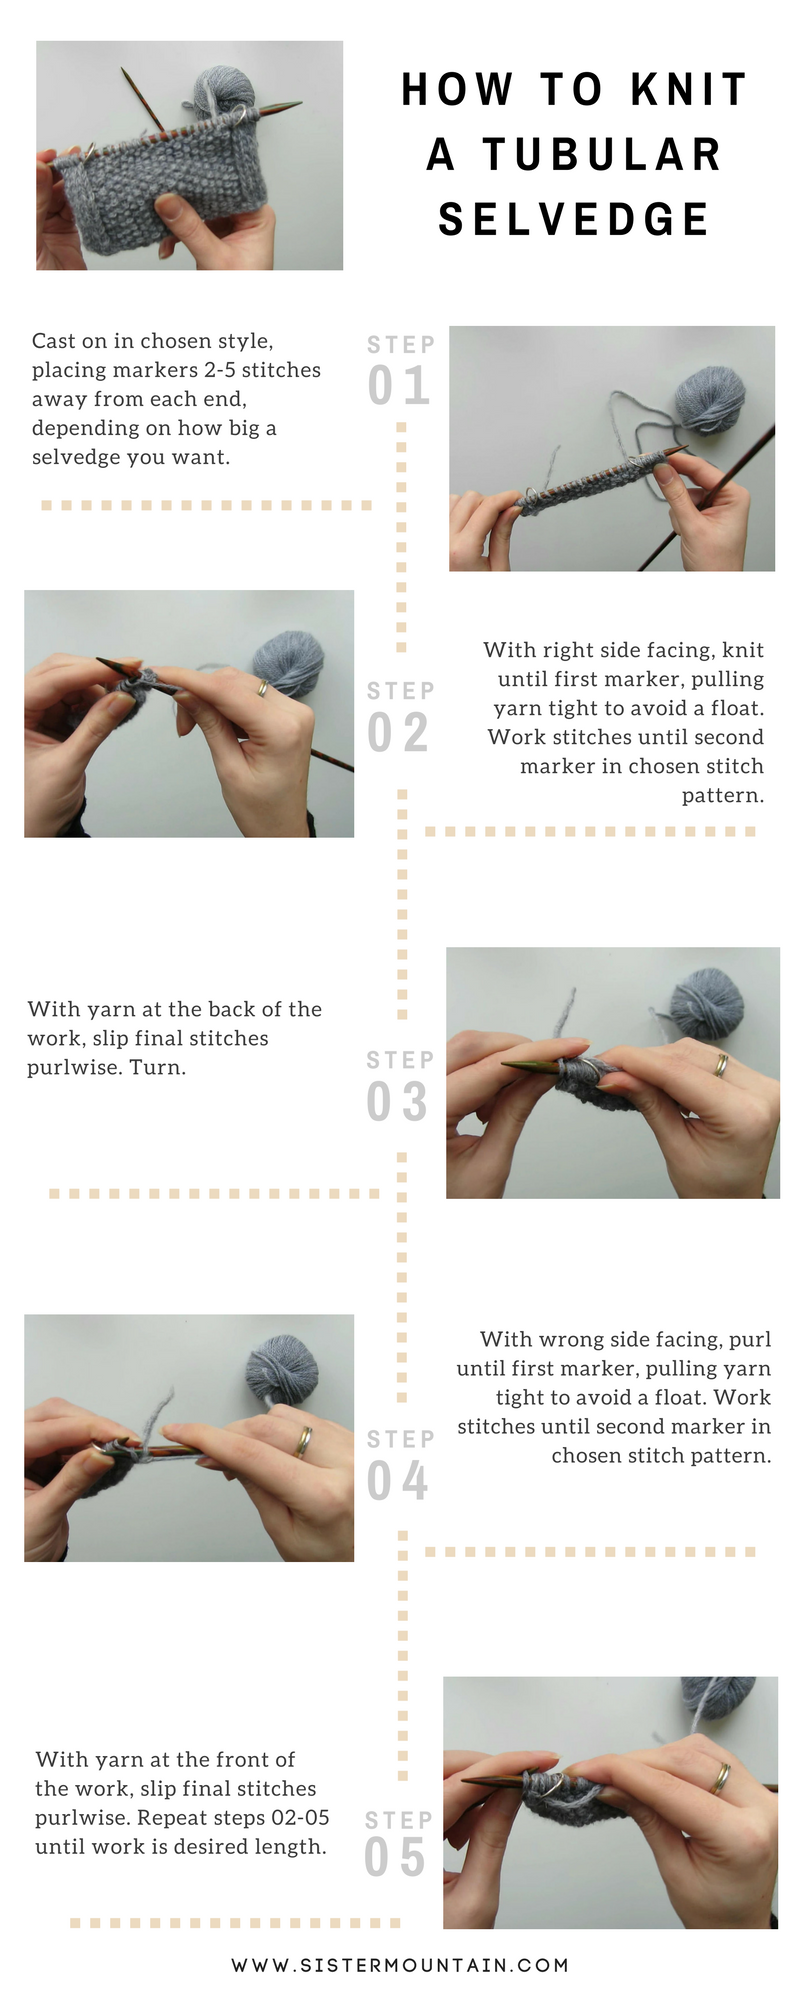 Infographic - How to Knit a Tubular Selvedge